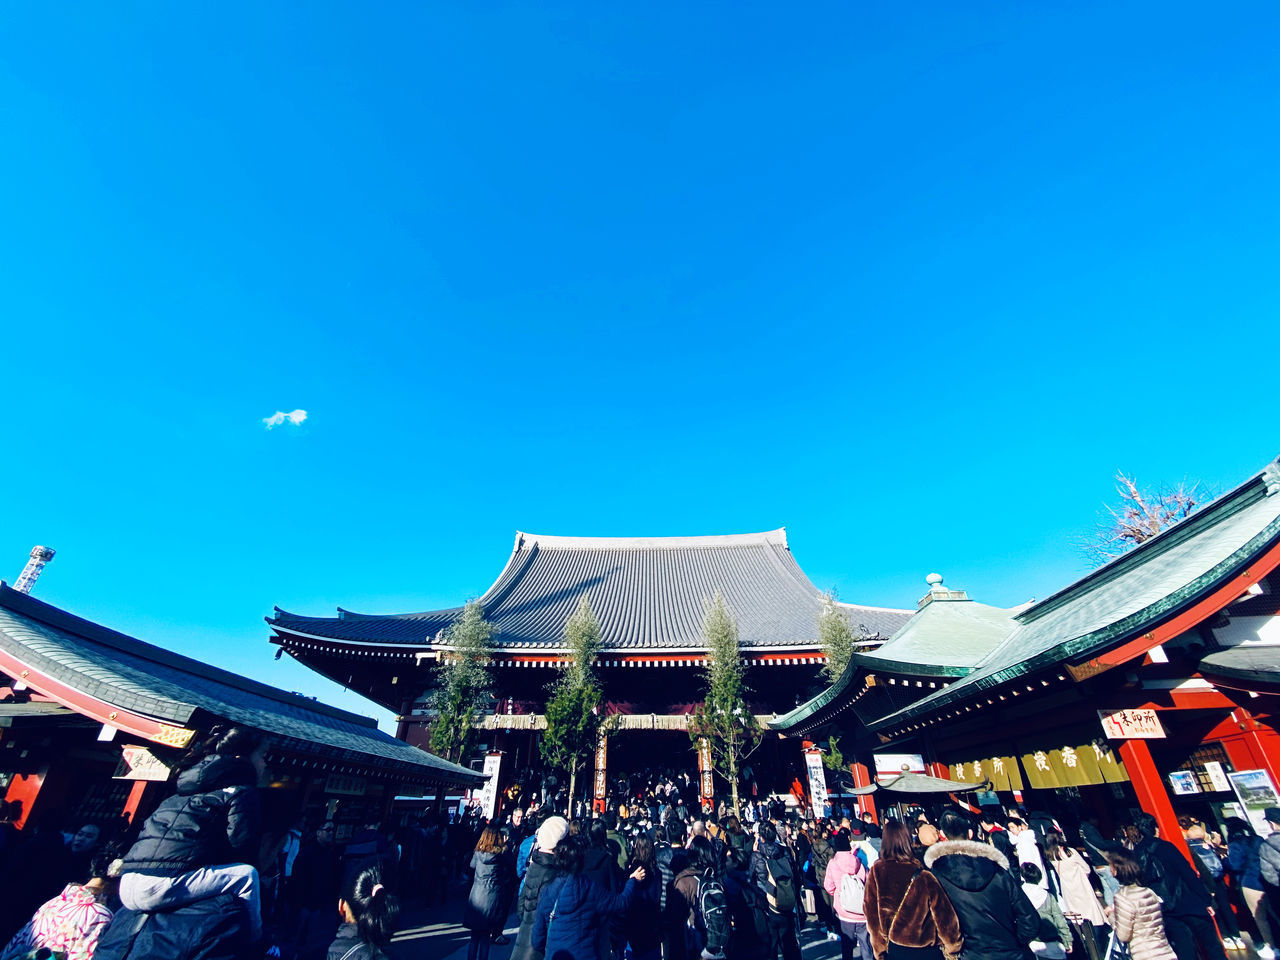 GROUP OF PEOPLE IN TEMPLE AGAINST BLUE SKY